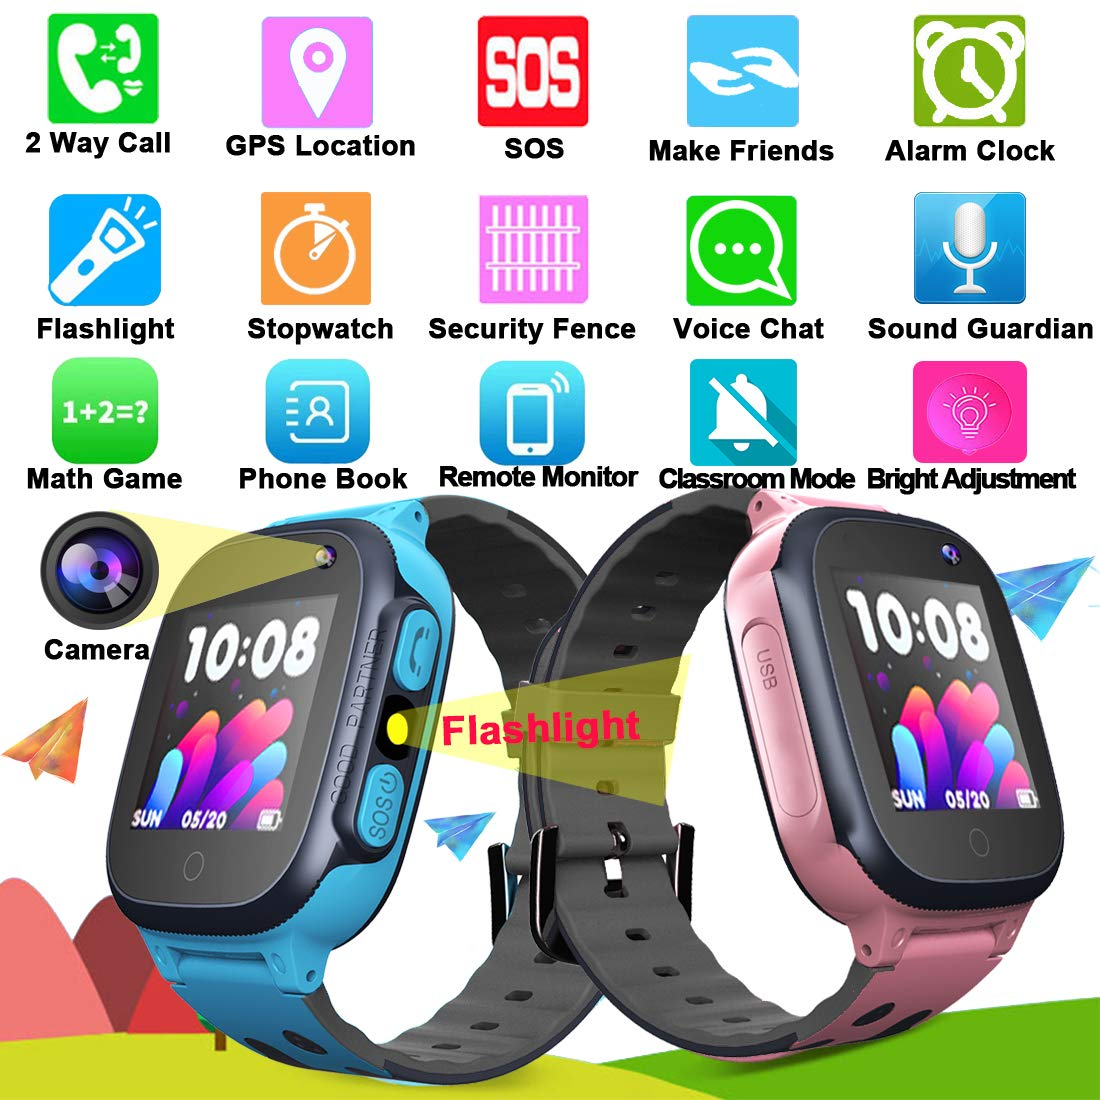 MiKin Children Smart Watches for Girls Boys Age 3-12 Kids Smartwatch Phone with GPS Tracker 2 Way Call SOS Remote Camera Touch Screen Alarm Clock Flashlight Voice Chat Gizmo Wrist Watch Android iOS by MiKin (Image #7)